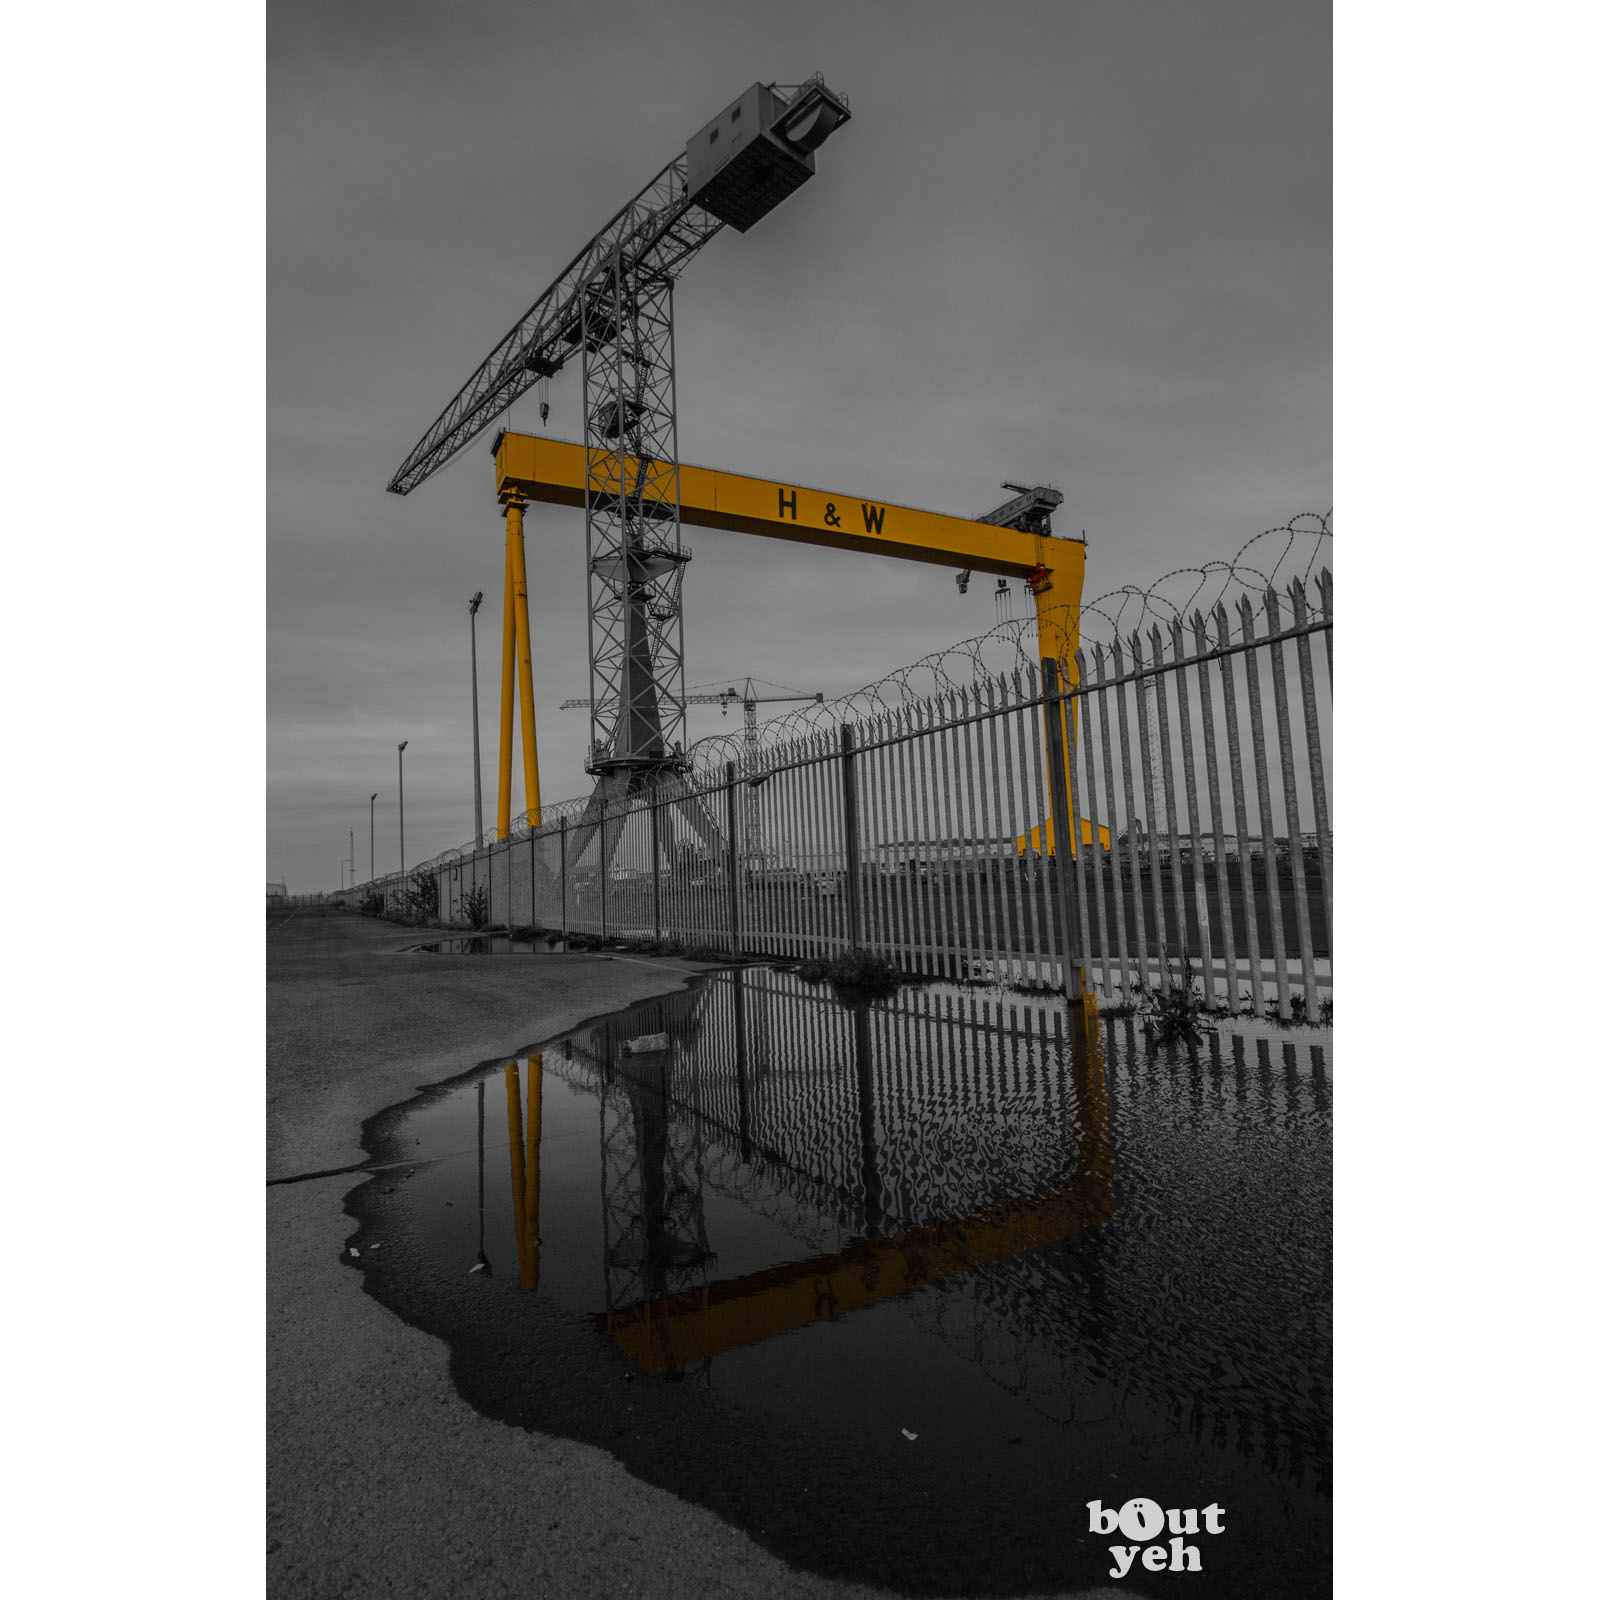 Image - Featured photographer, Justin McLean, black and white photograph of Harland and Wolff shipyard, Belfast, Northern Ireland.